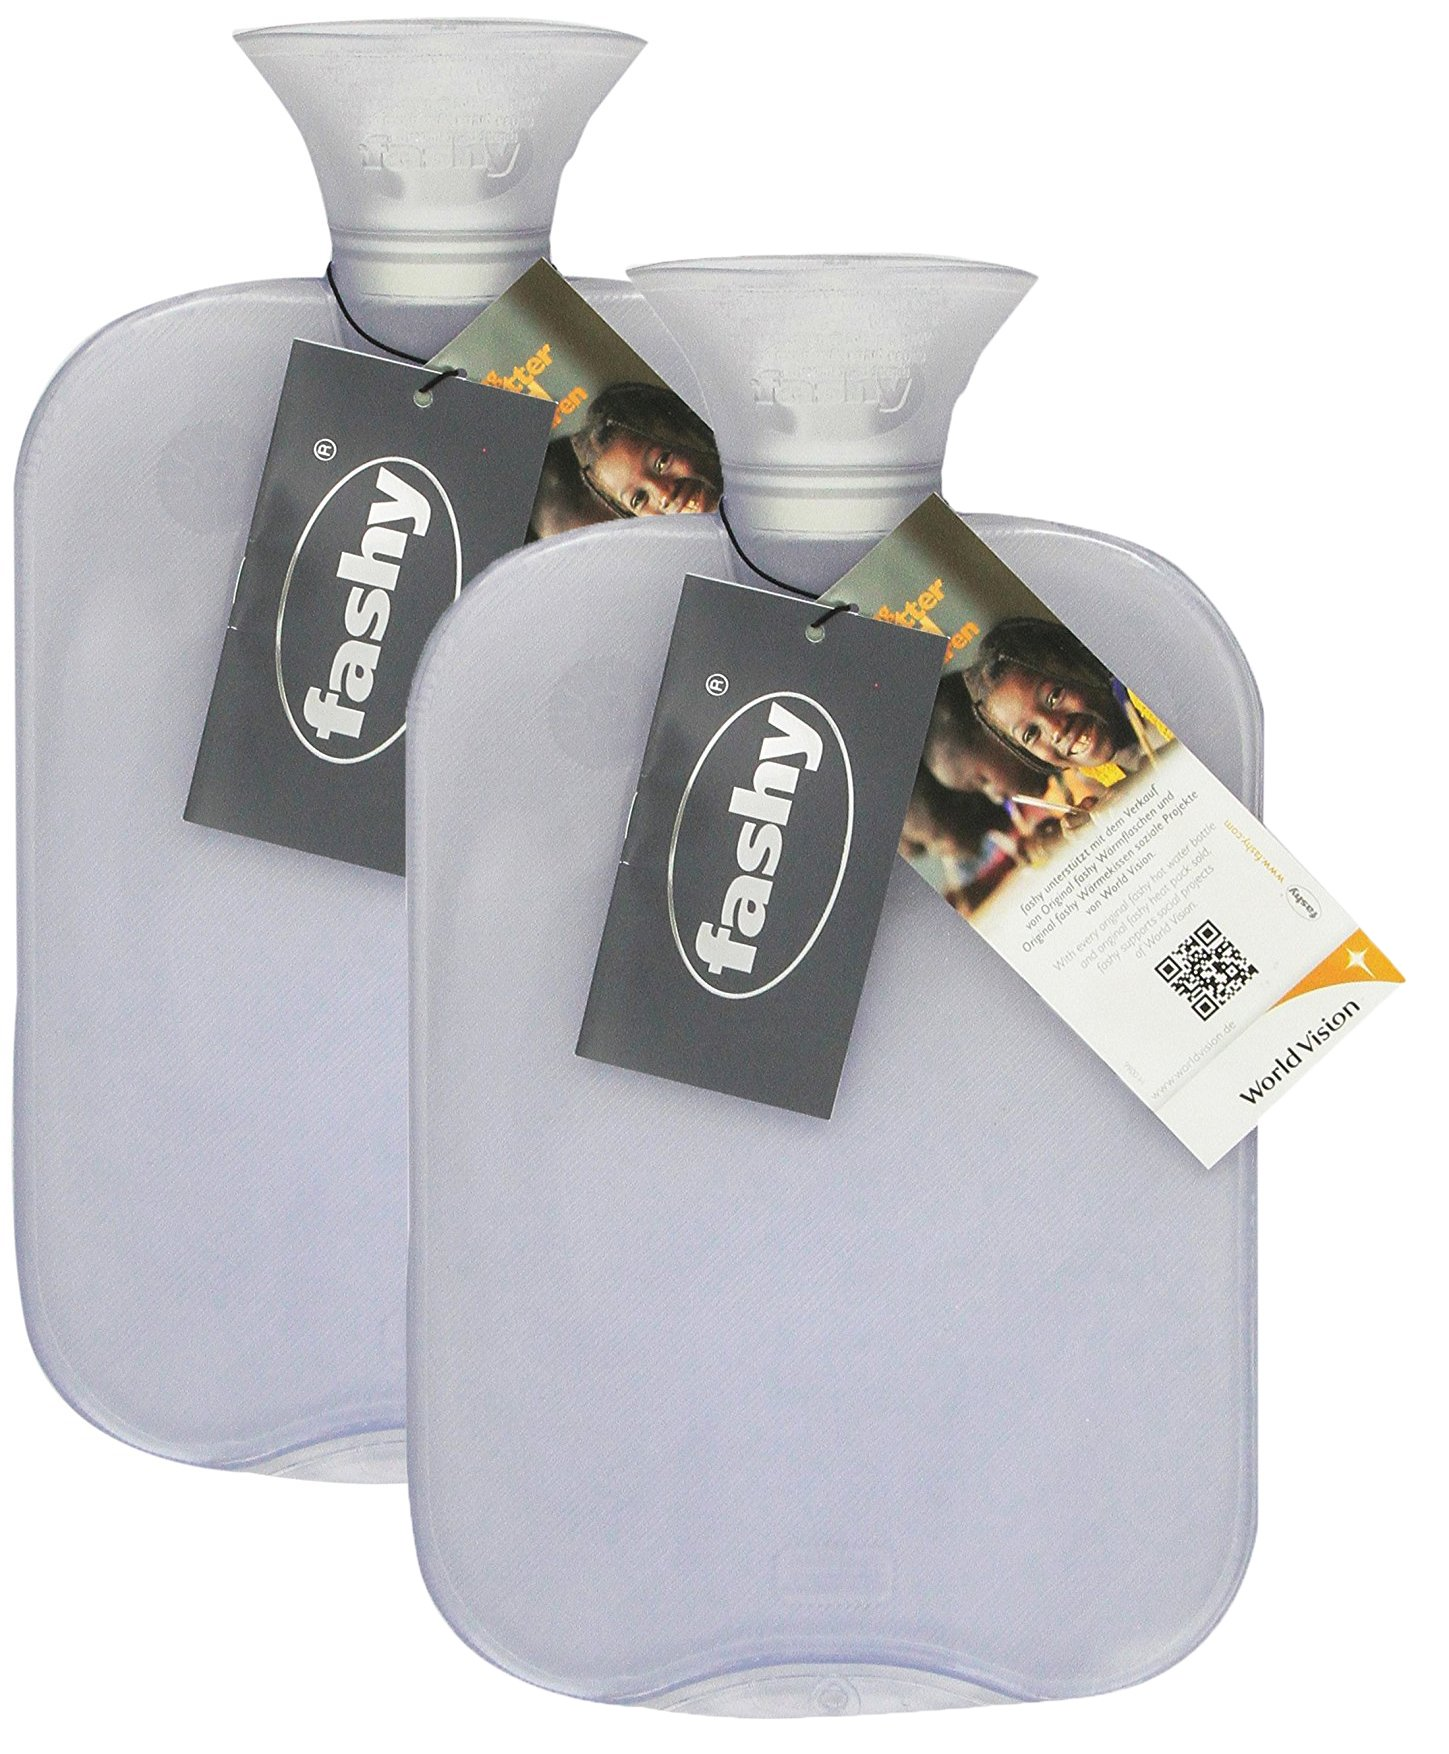 Transparent Classic Hot Water Bottle - Made in Germany (Clear- 2pk) by Fashy